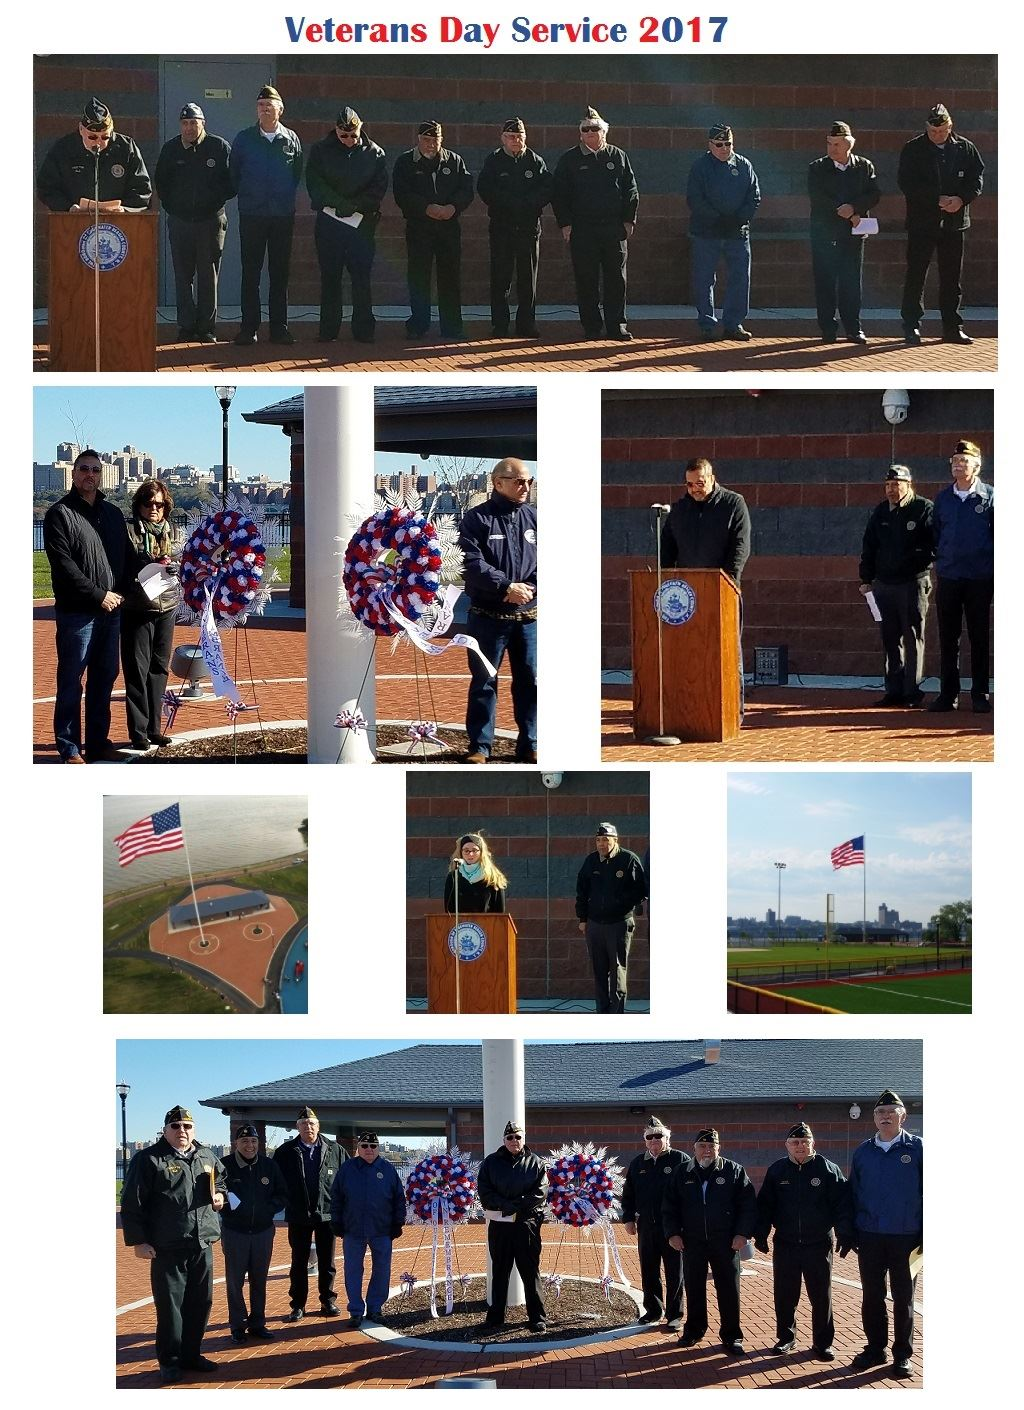 veterans day services 2017